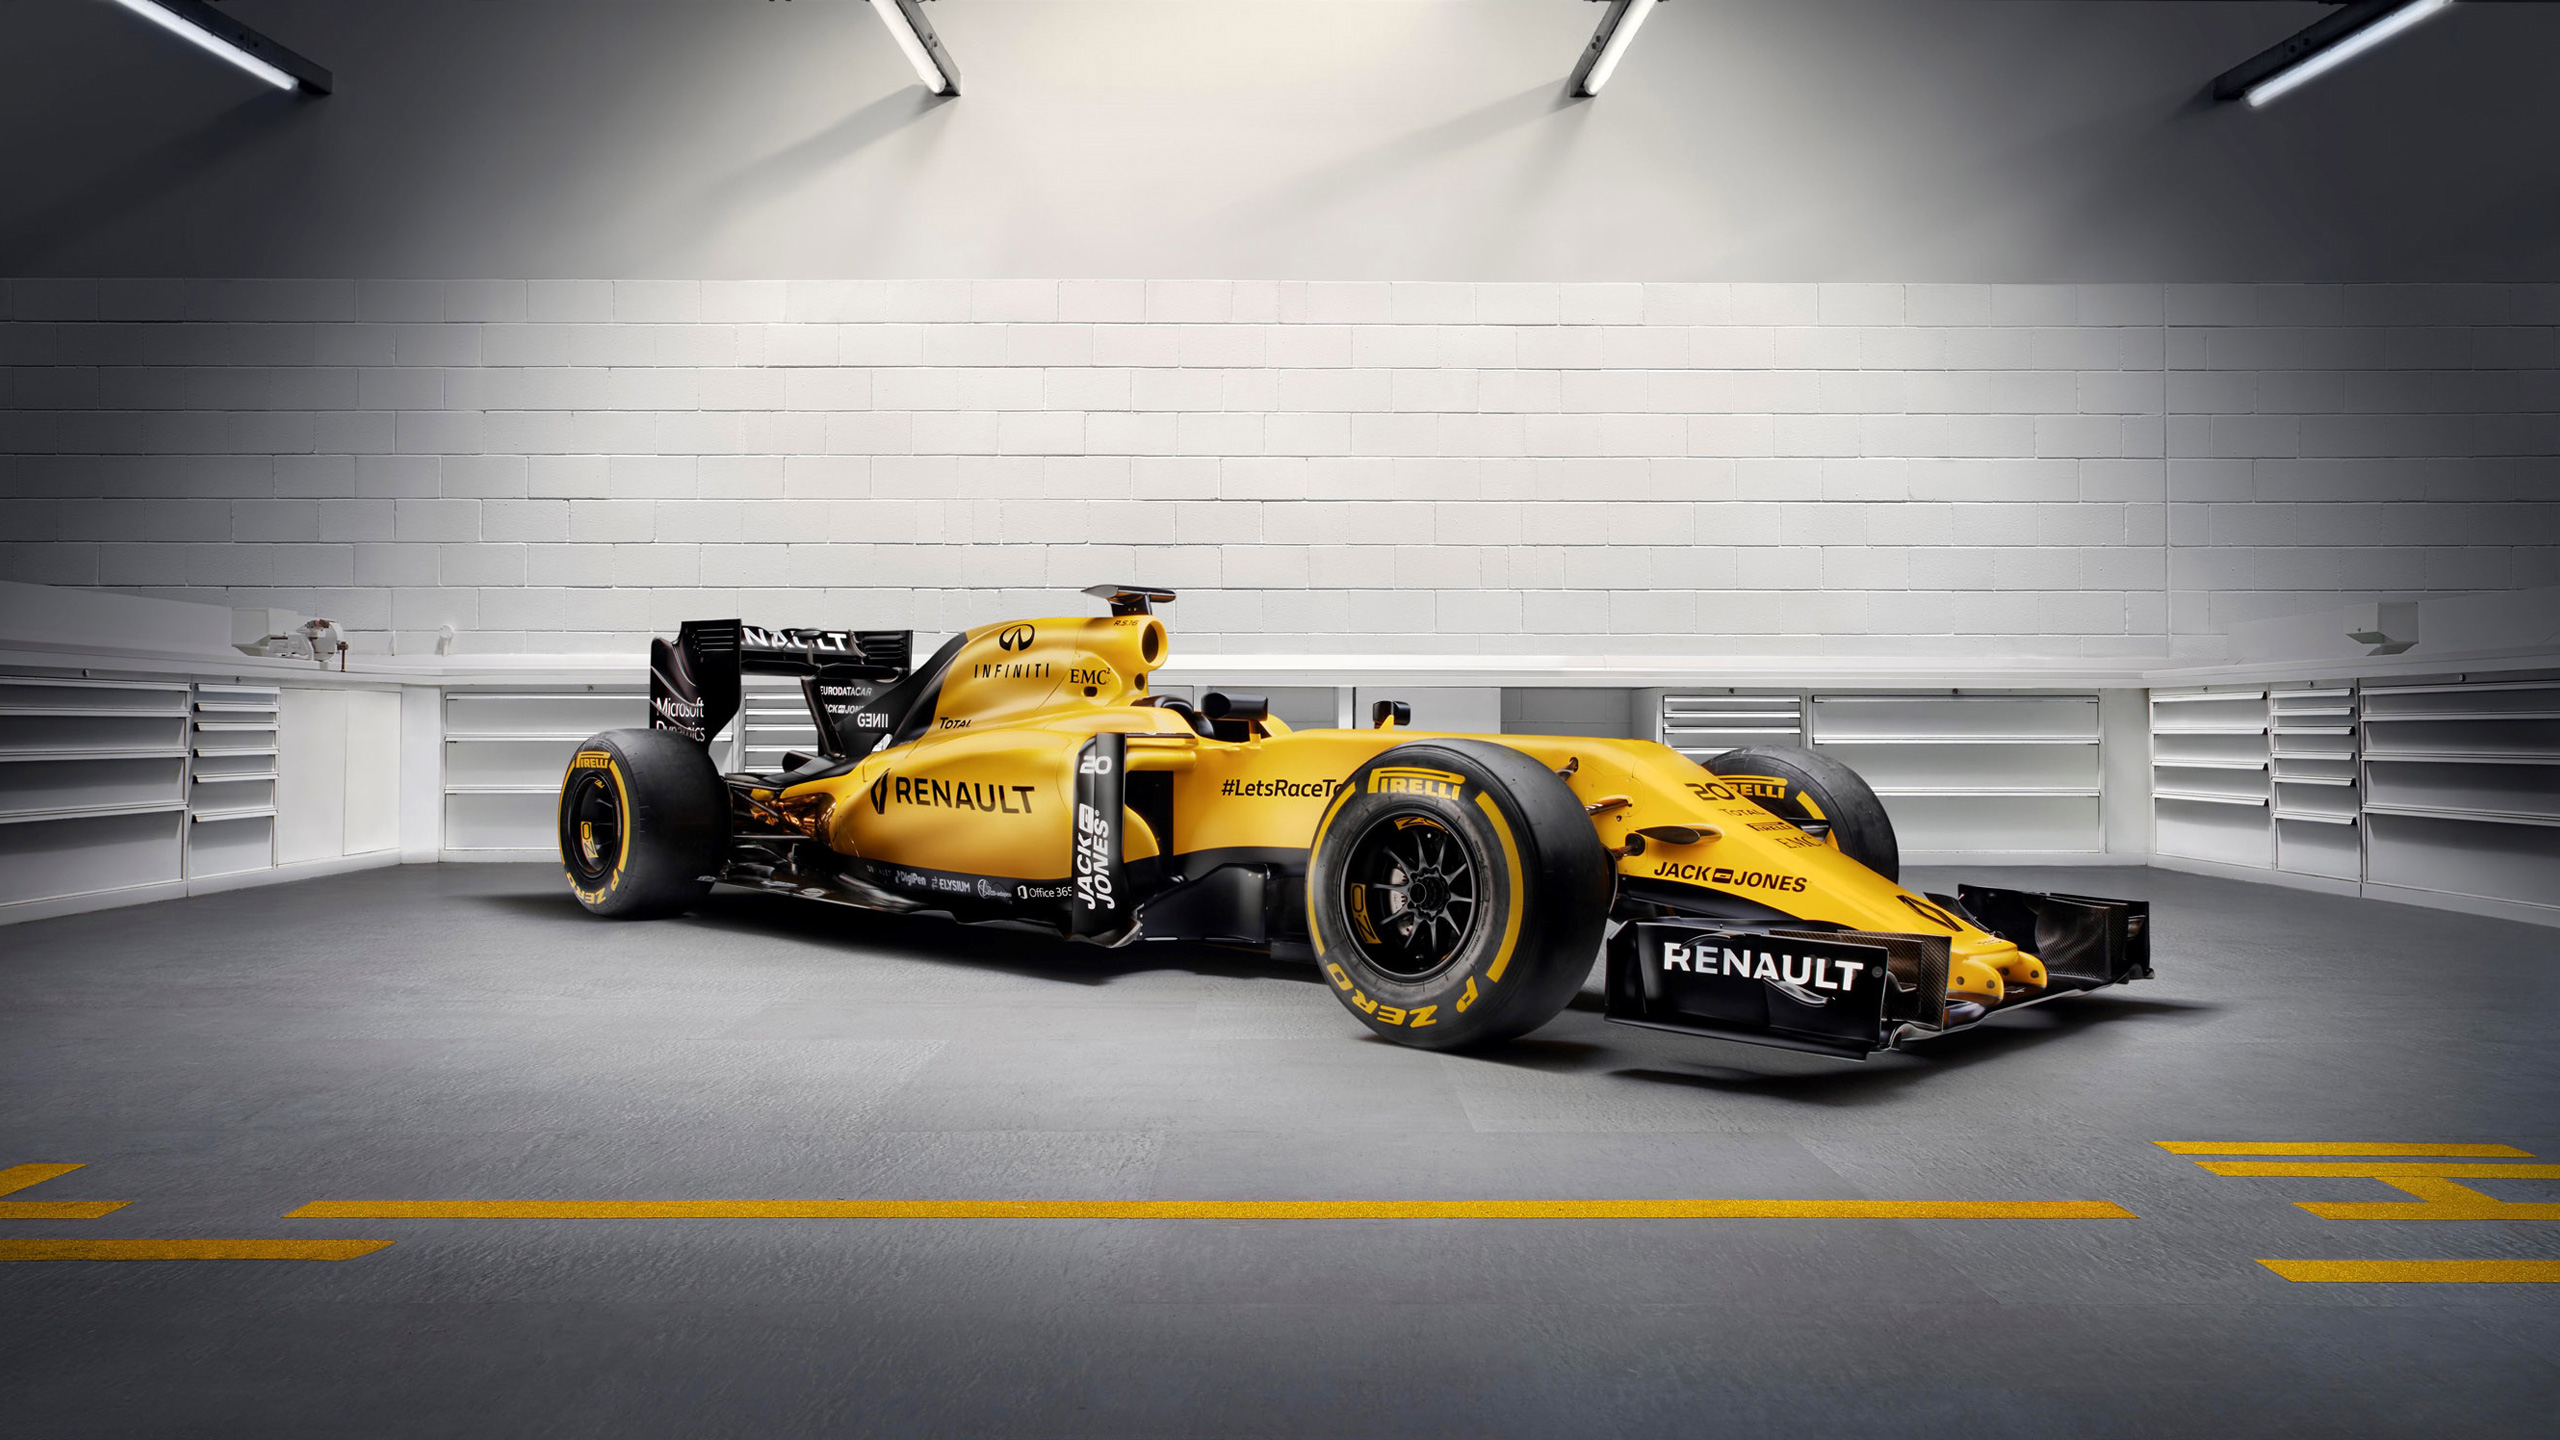 2560x1440 - F1 Wallpapers 20